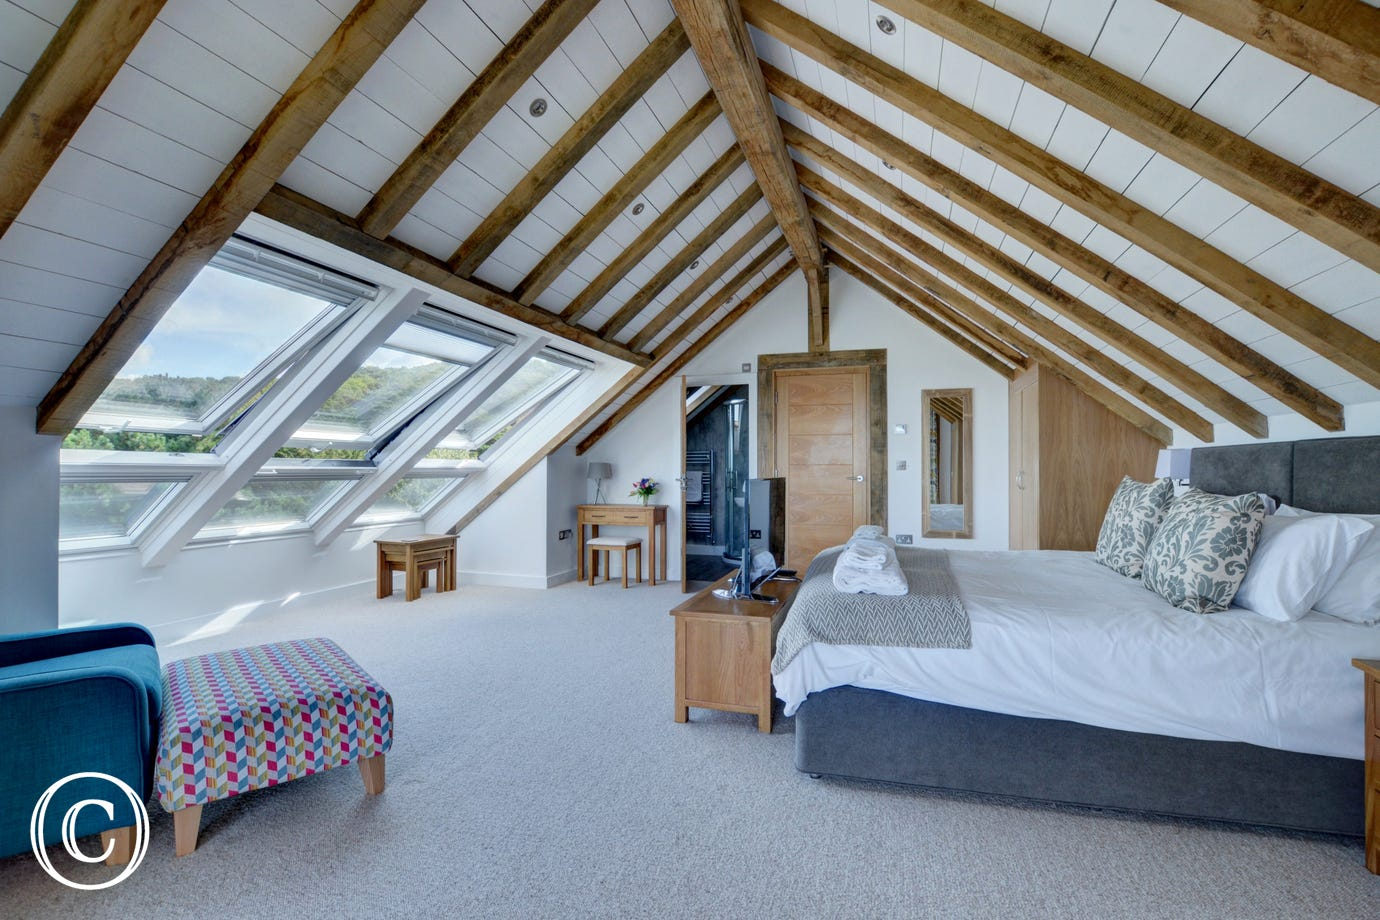 The huge stunning master bedroom with ensuite bathroom